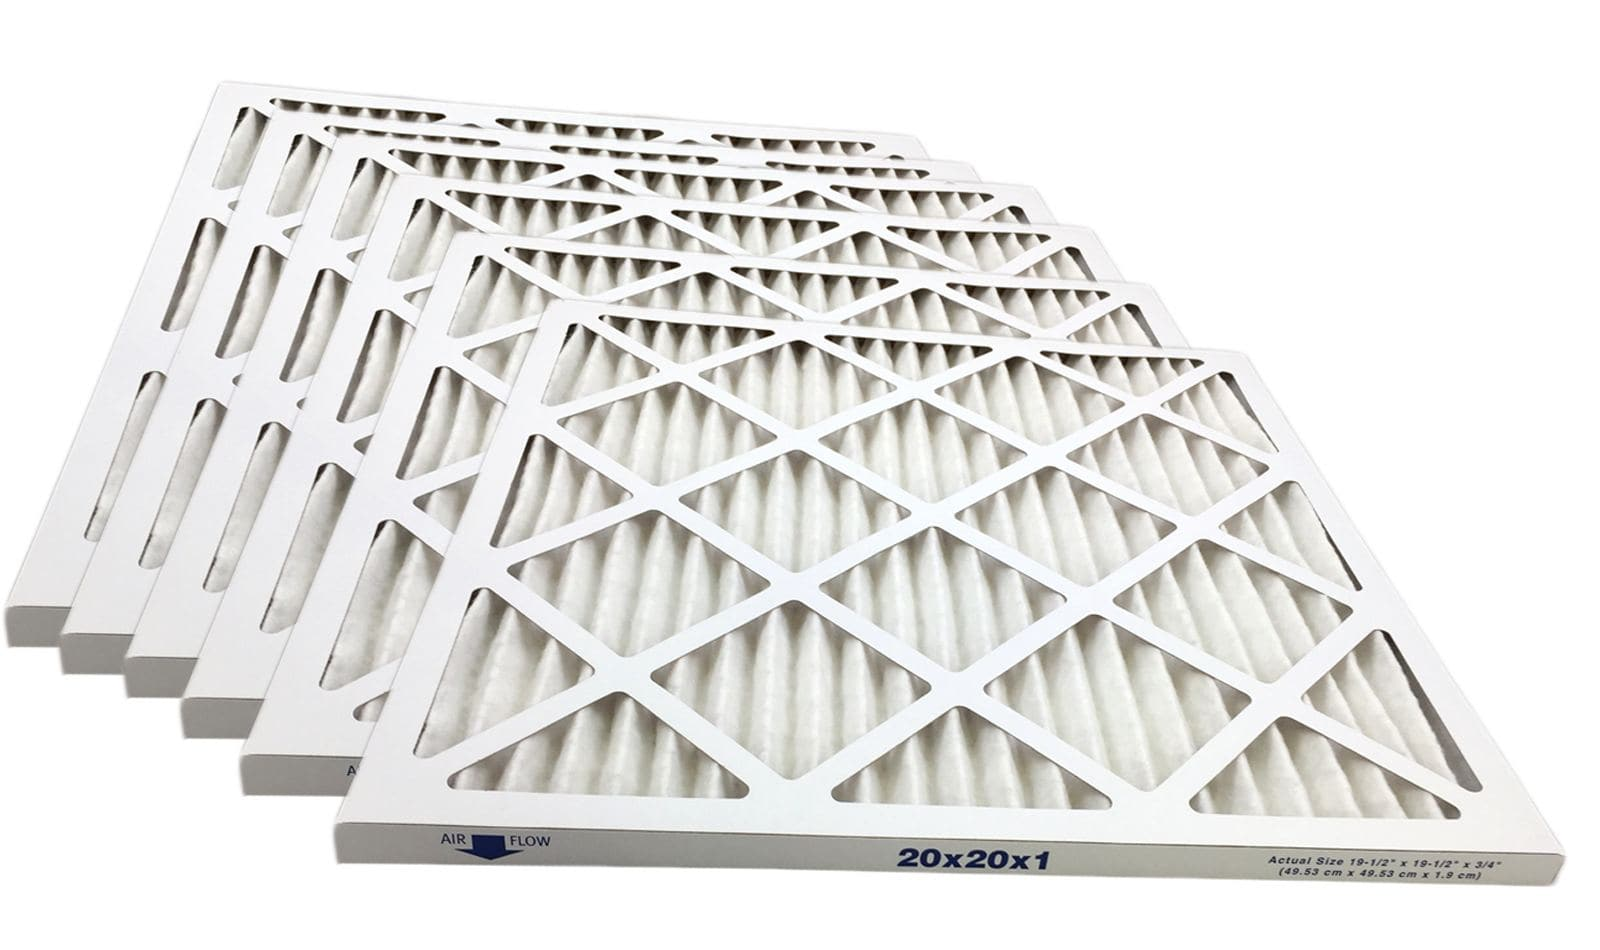 20x20x1 Merv 11 Pleated AC Furnace Filter - Case of 6 by Atomic